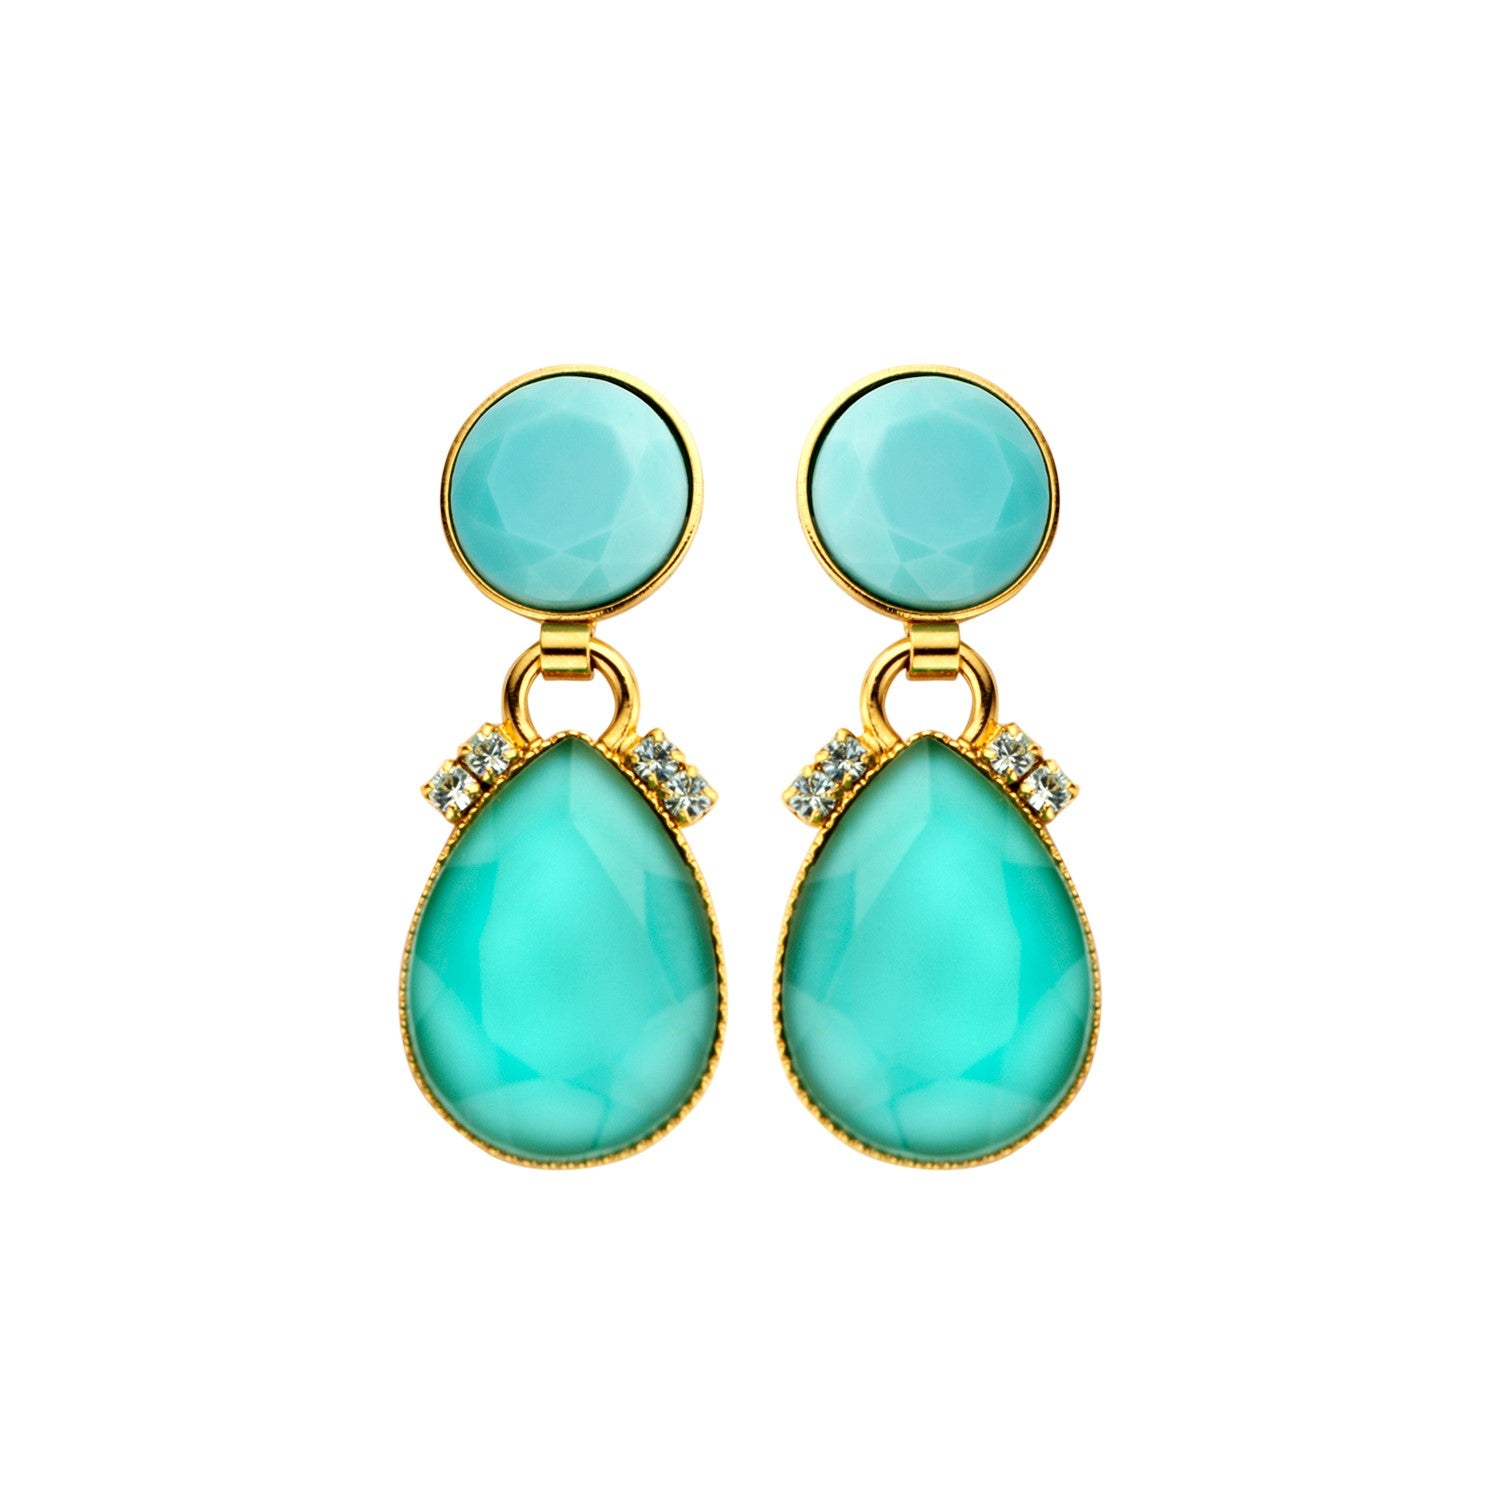 Mini 2drops mint earrings - Souvenirs de Pomme